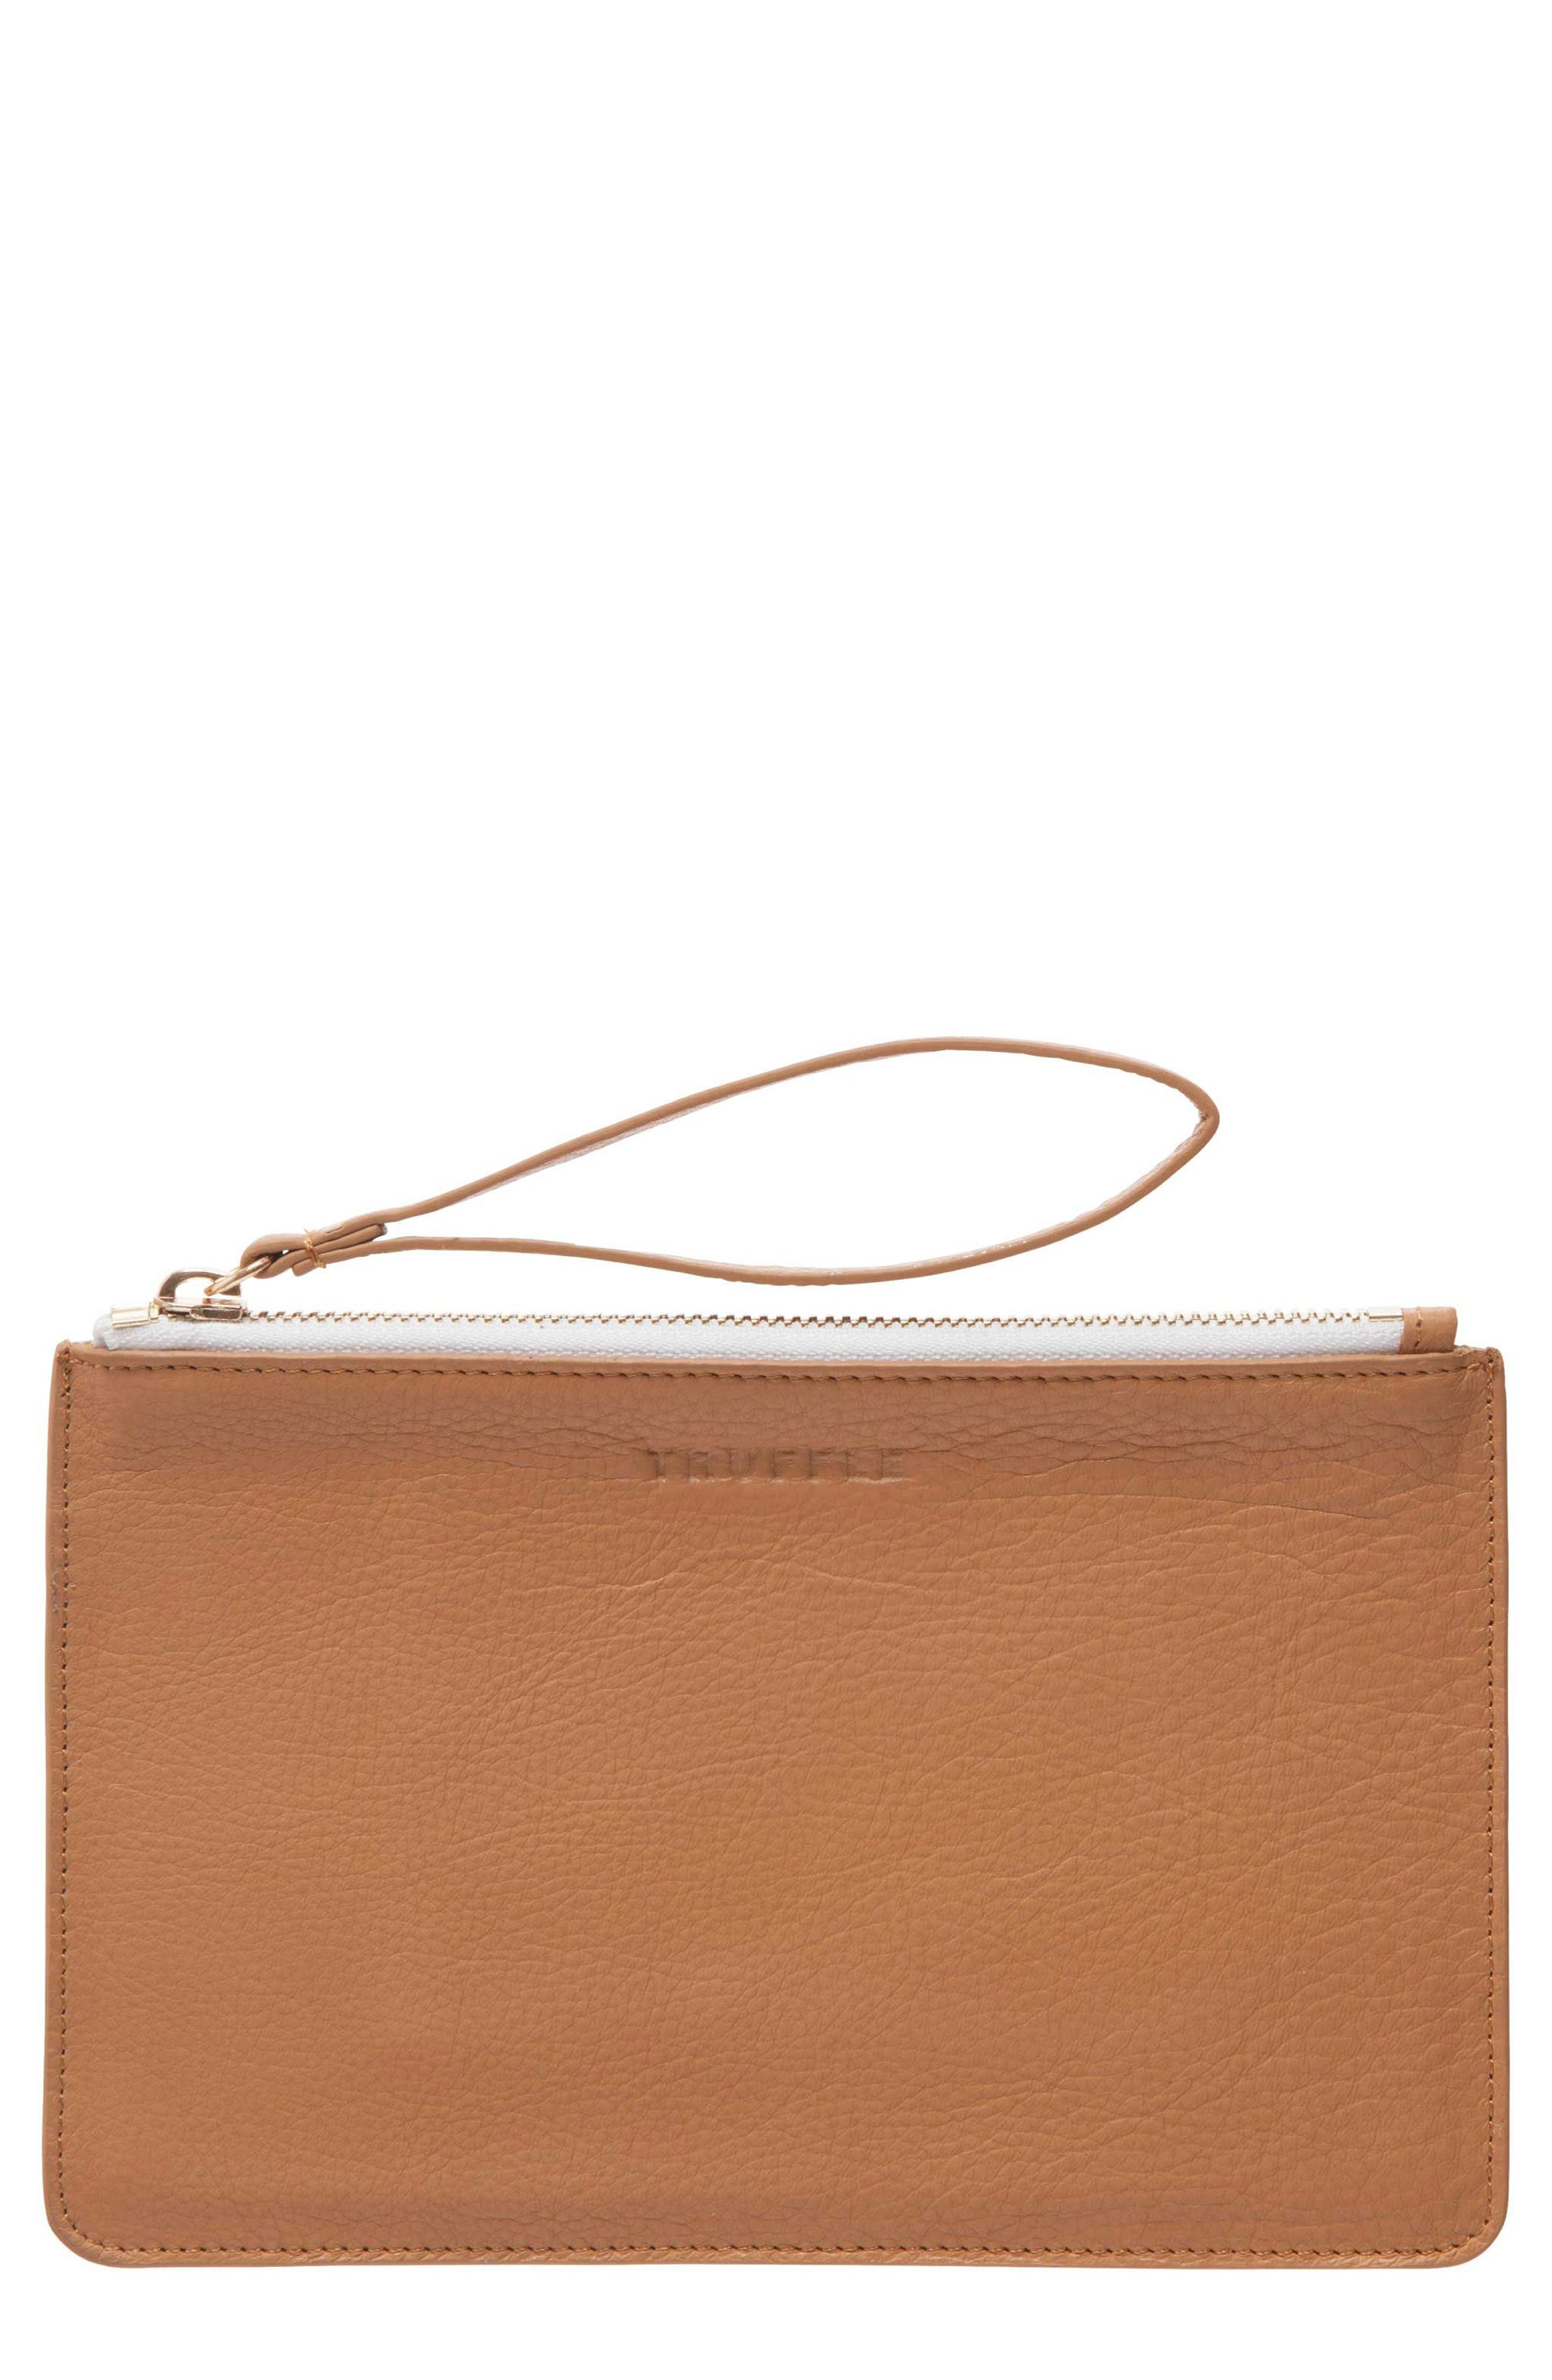 Privacy Leather Wristlet,                         Main,                         color, Caramel